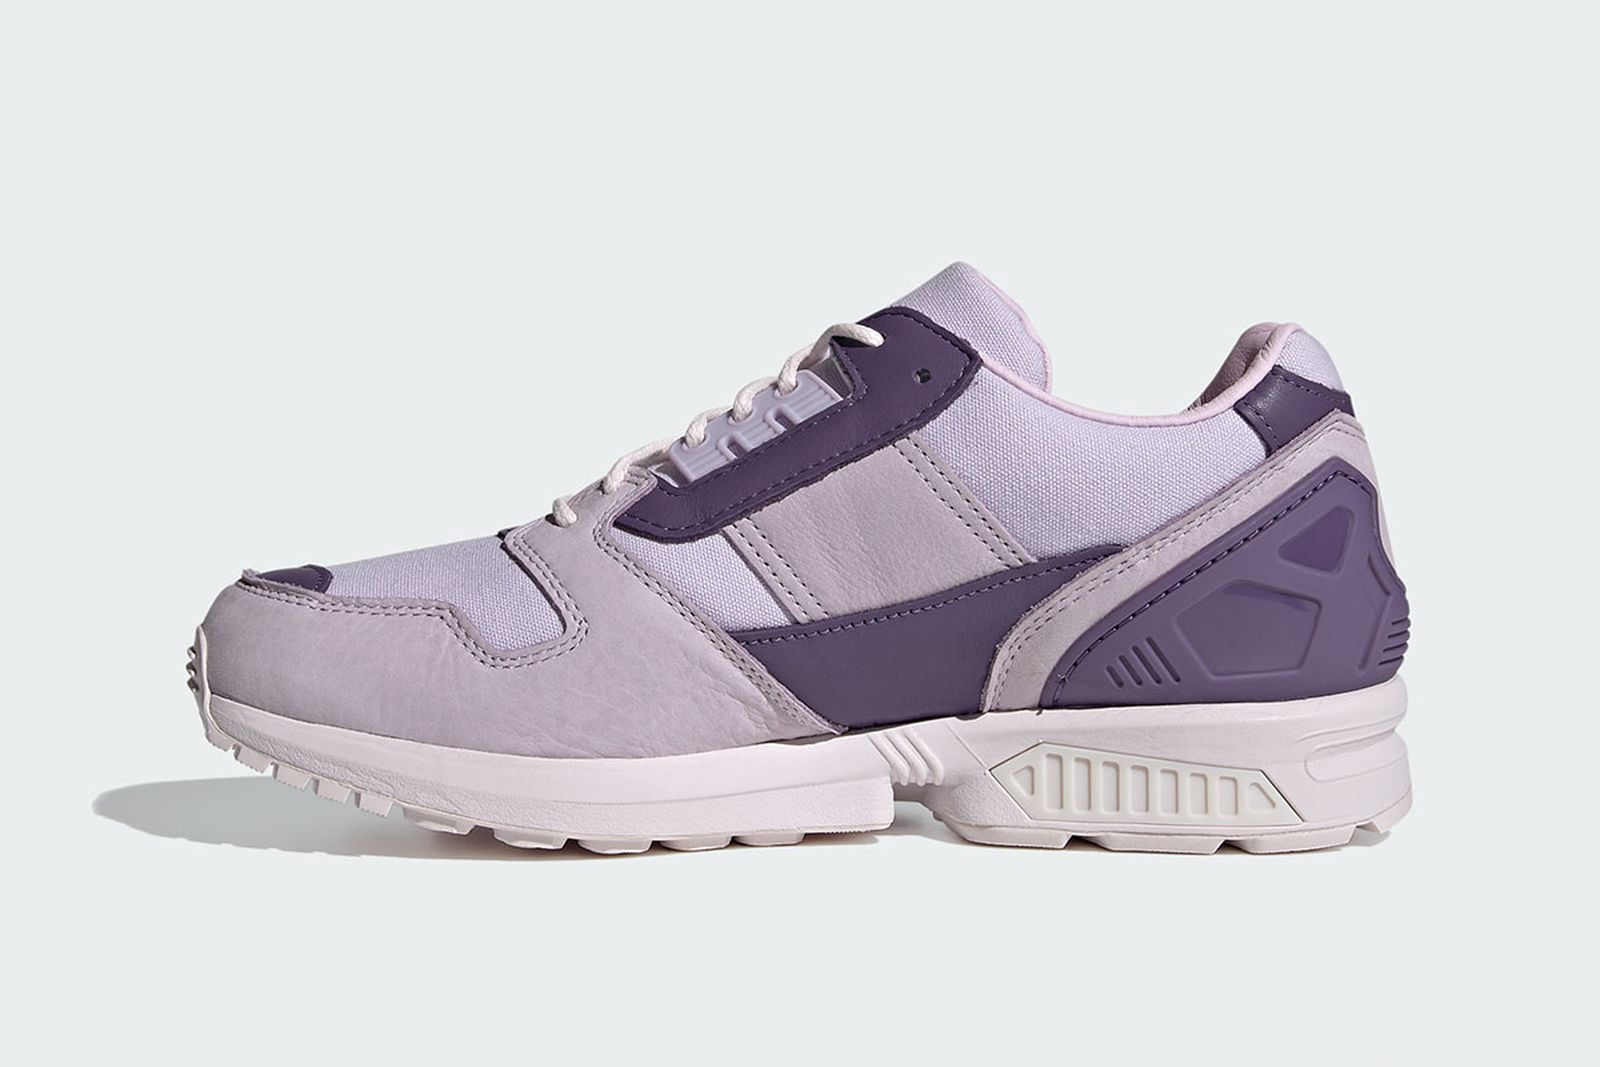 deadhype x adidas originals zx 8000 product sot